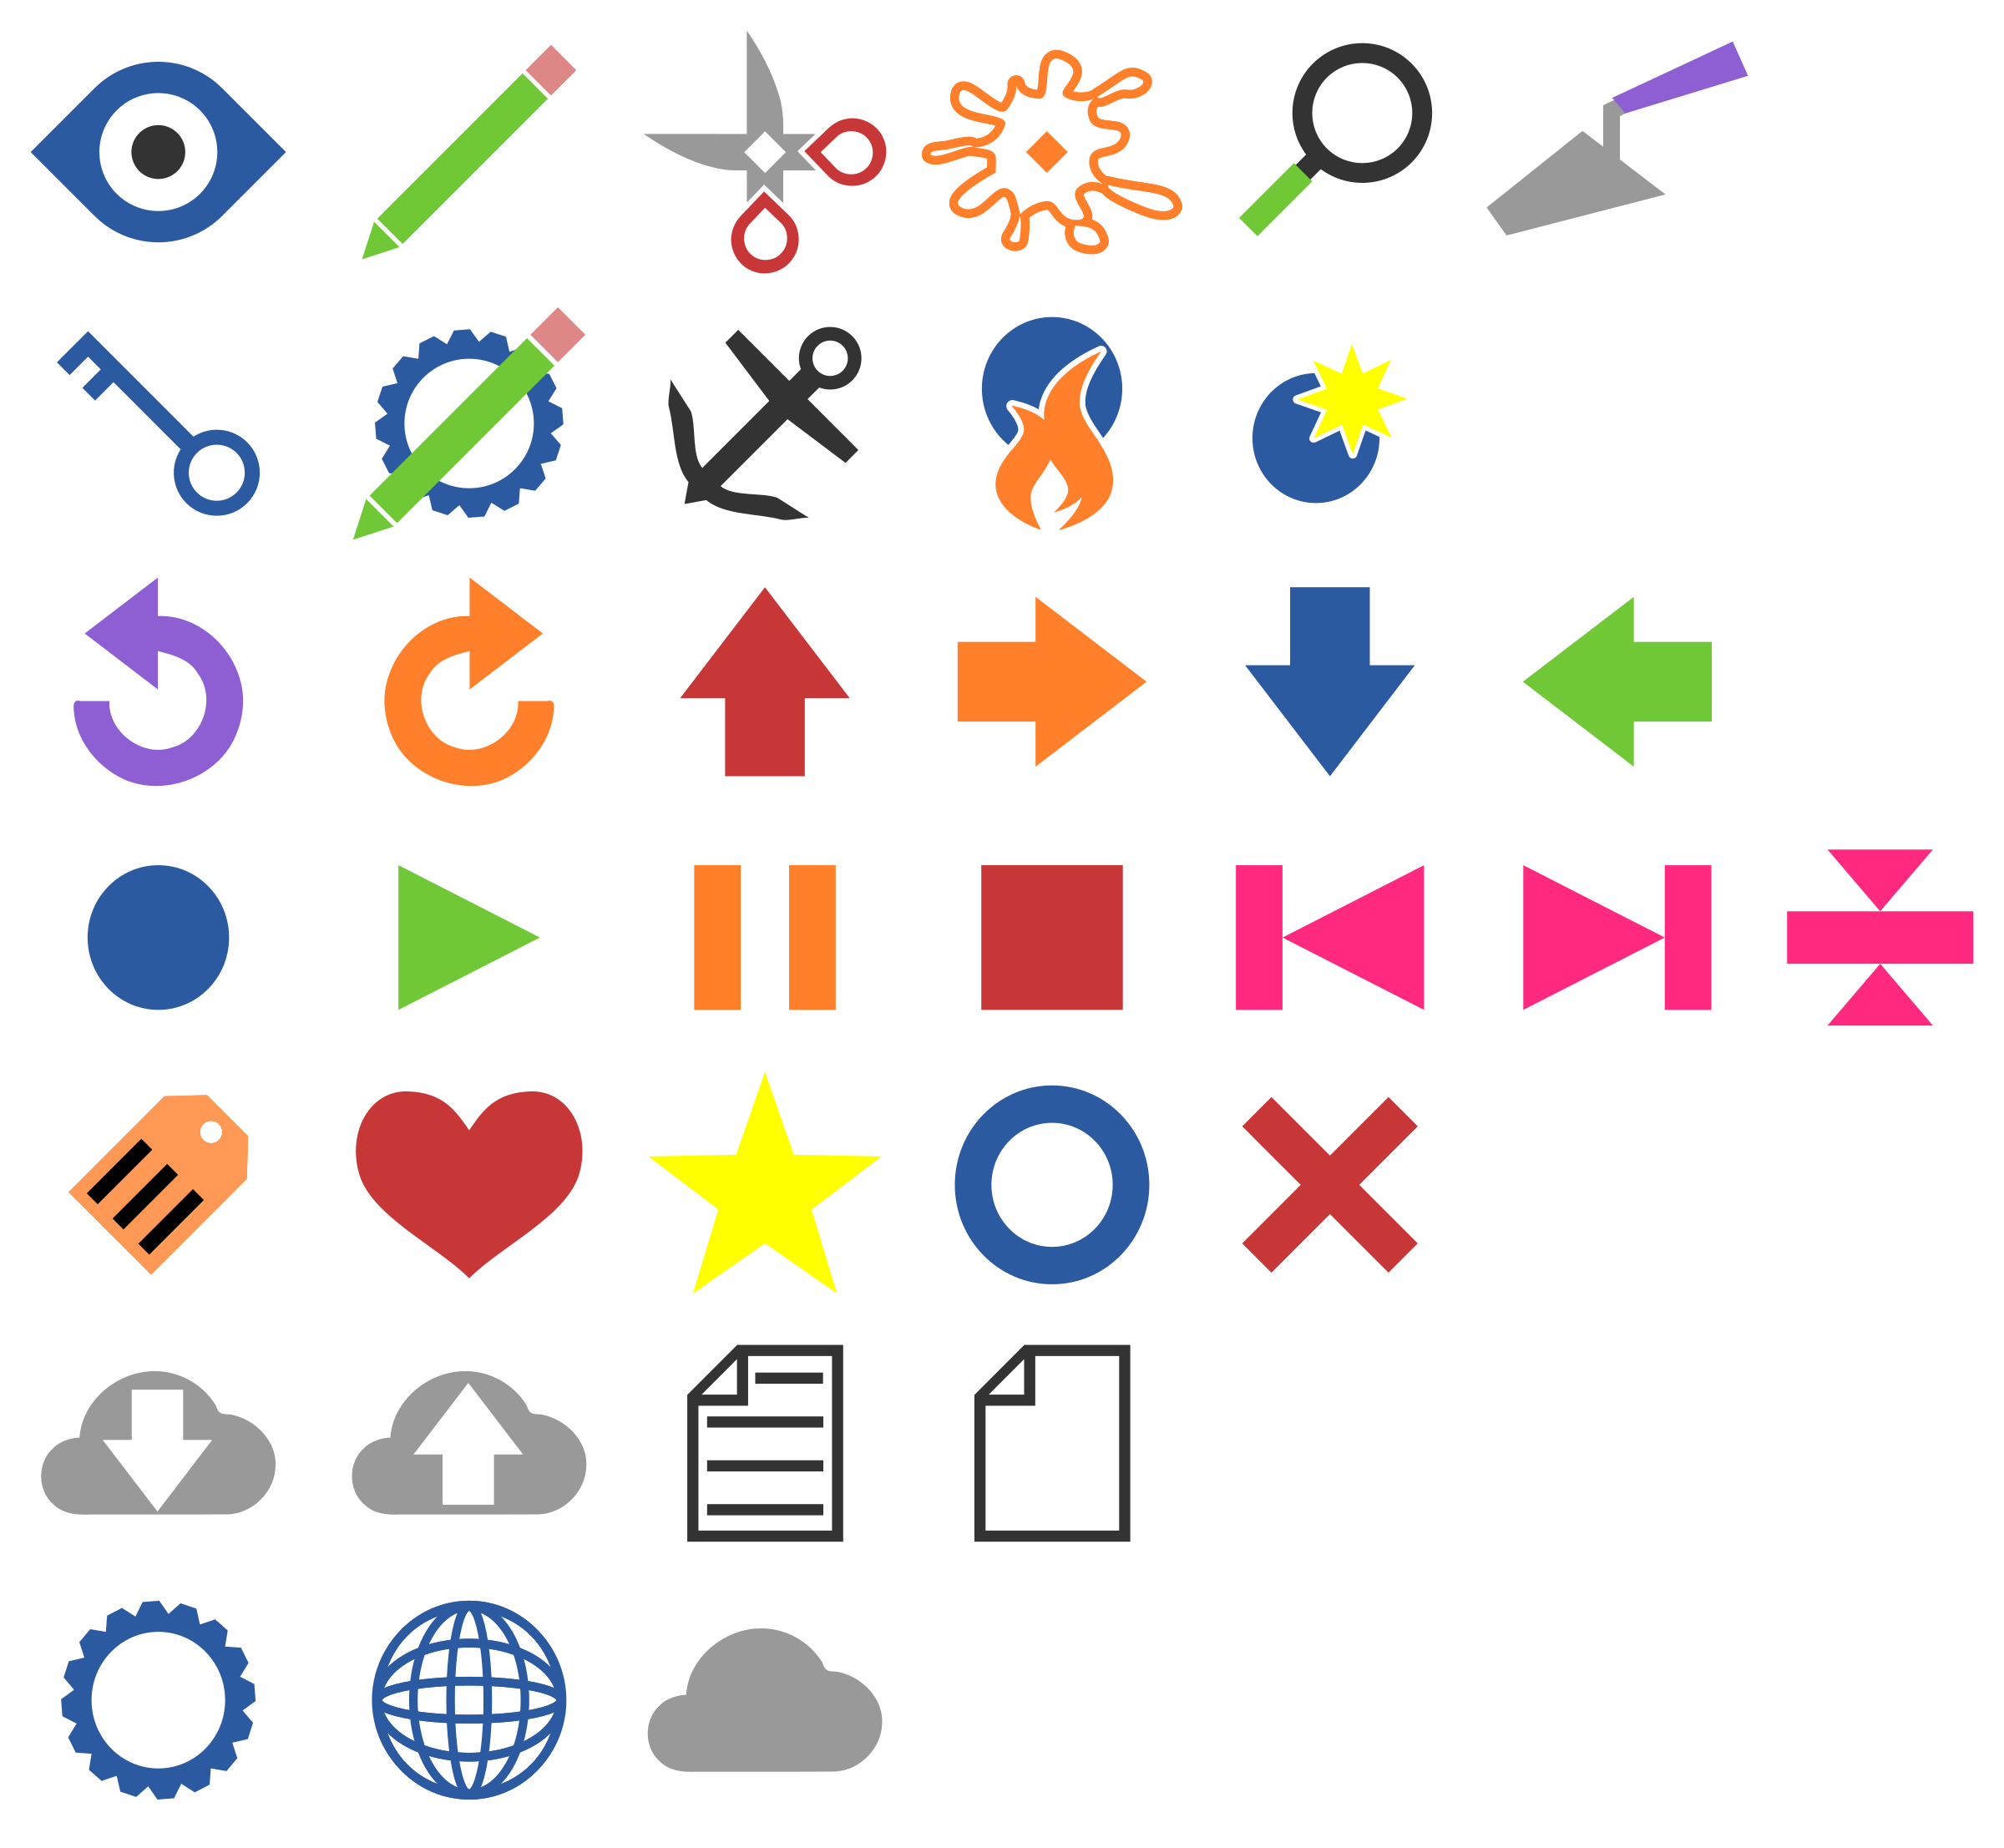 Minimally Colored Symbols by ihalseide